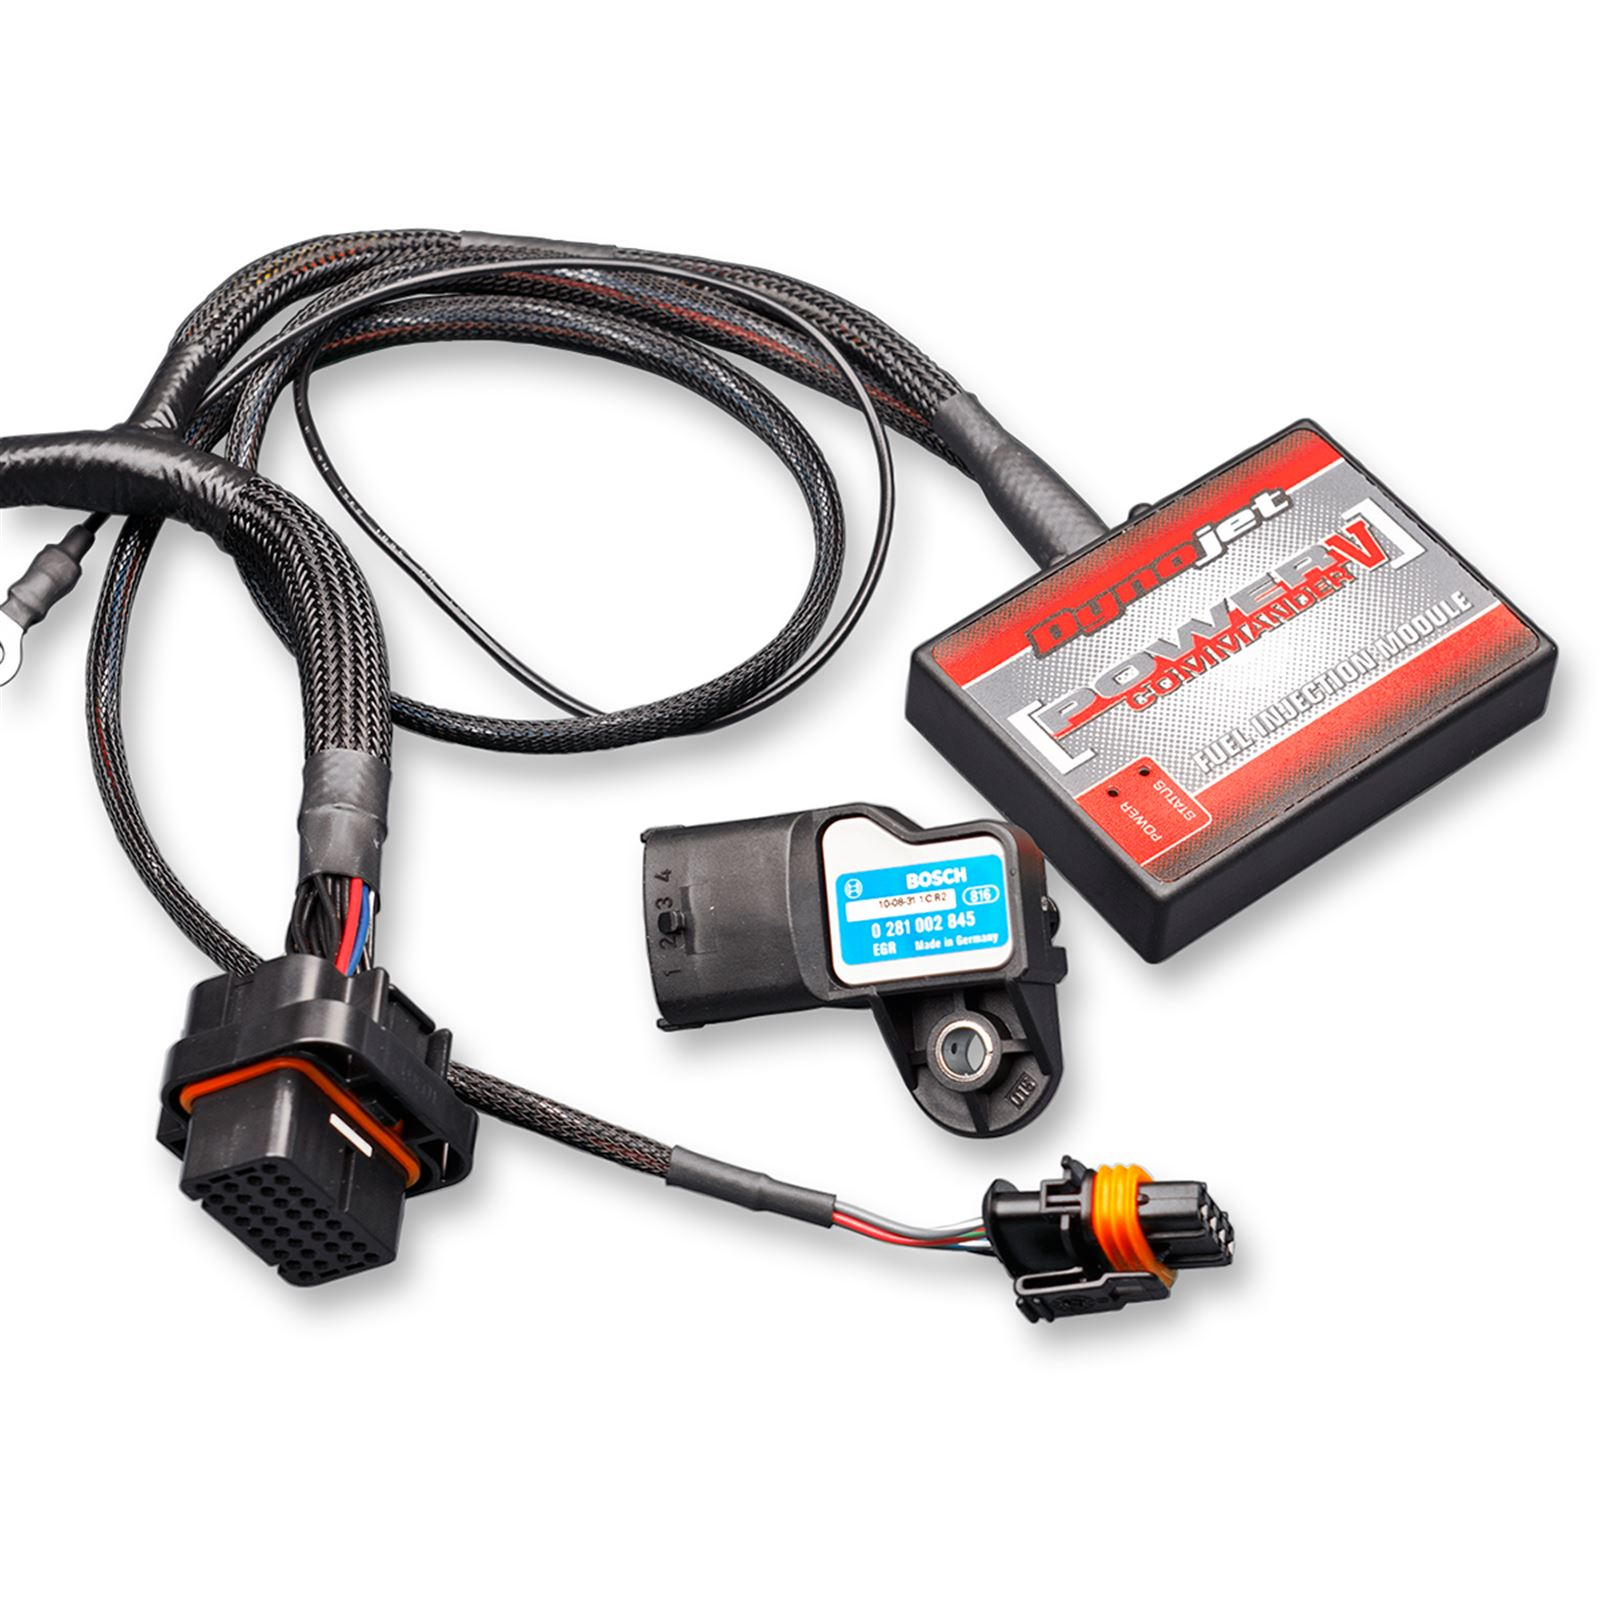 Dynojet Power Commander-V Polaris Pressure Temperature Input with Ignition Adjustment Axys800